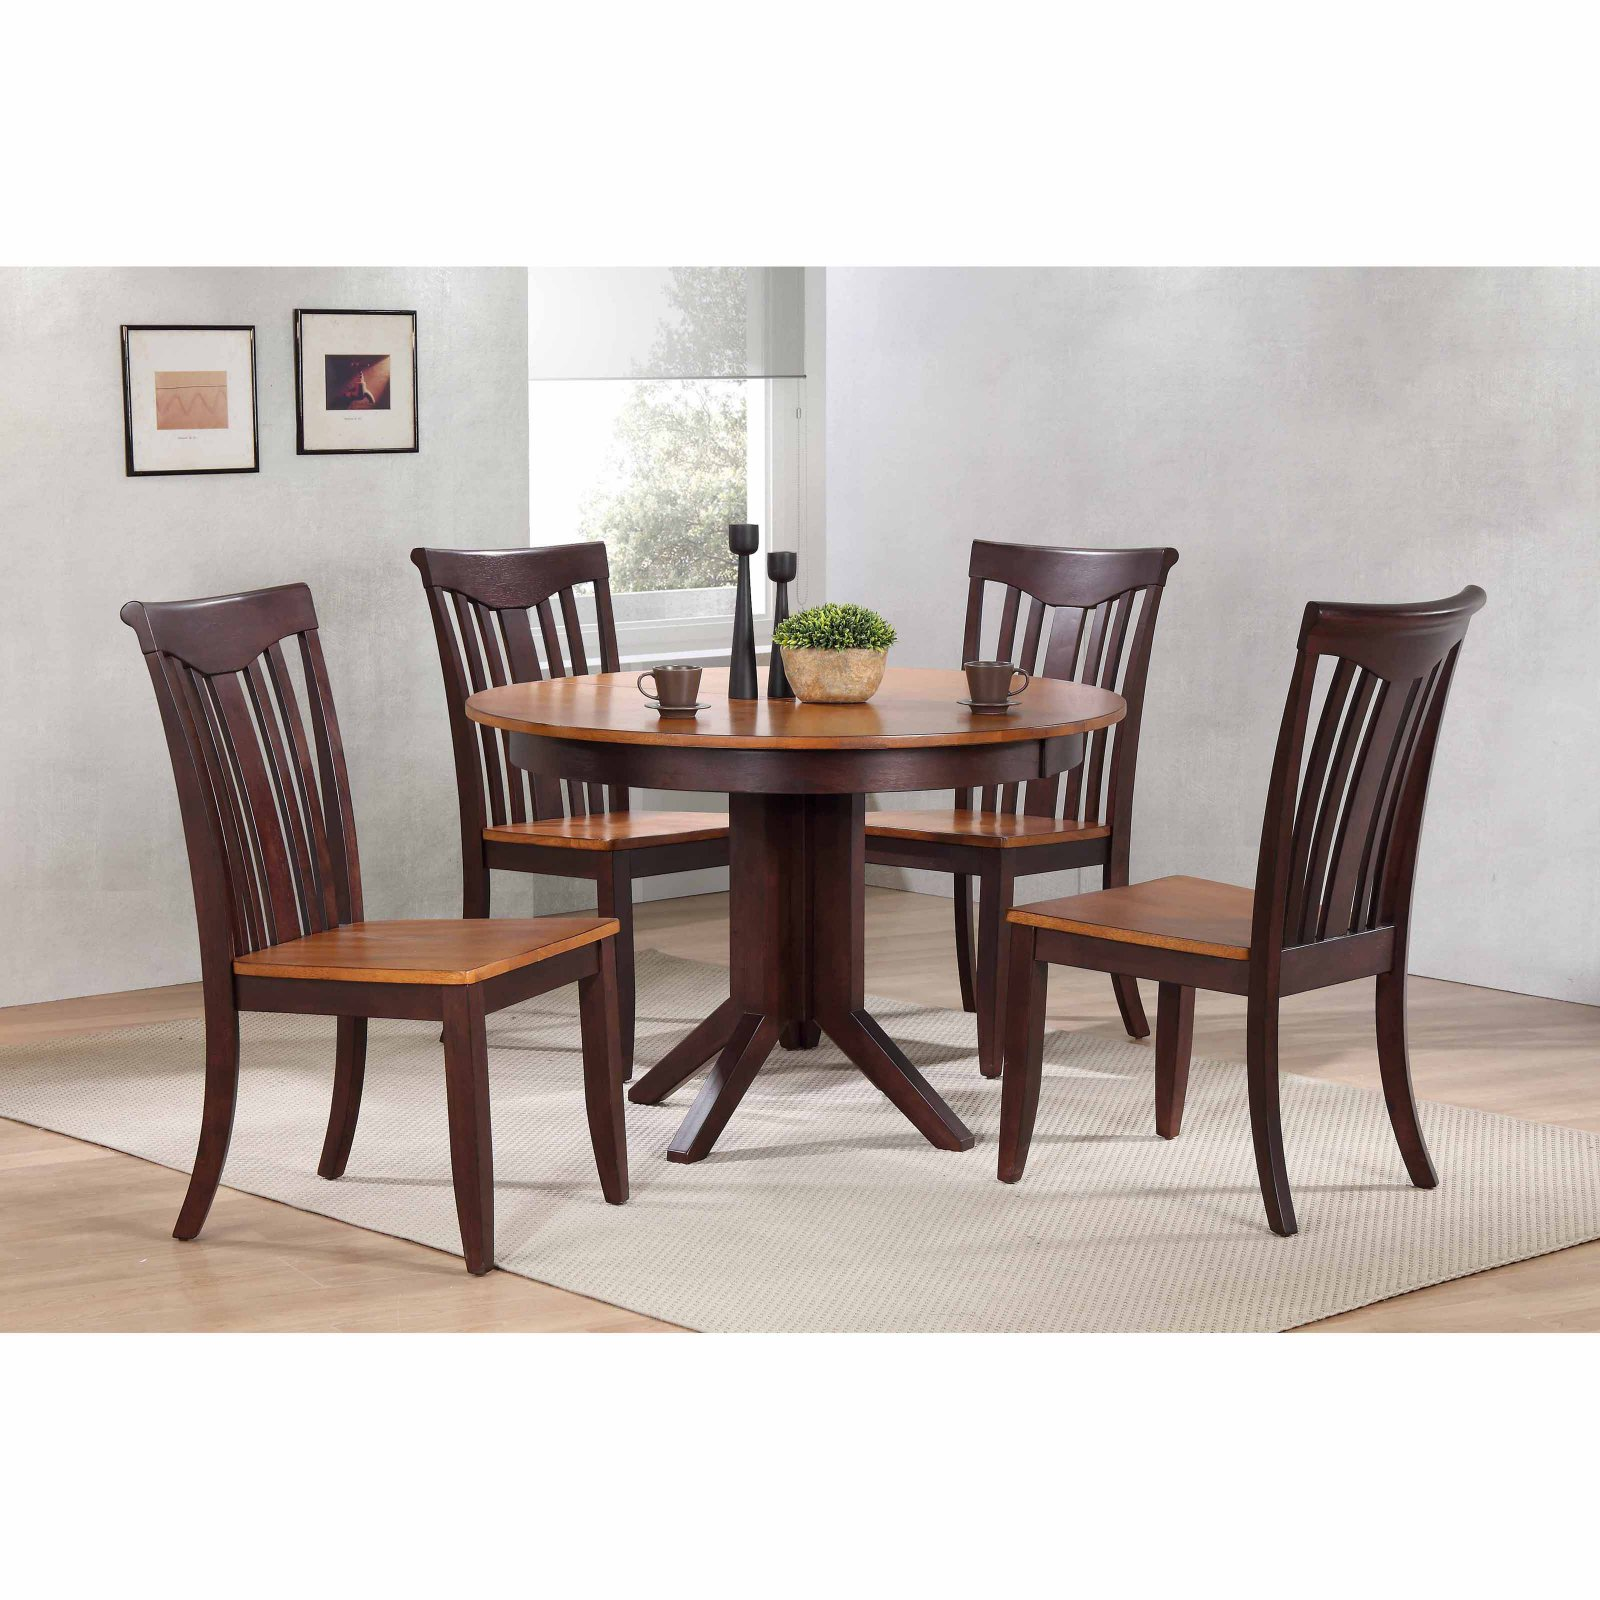 Iconic Furniture Contemporary 45 in. Slat Back 5 Piece Round Dining Table Set